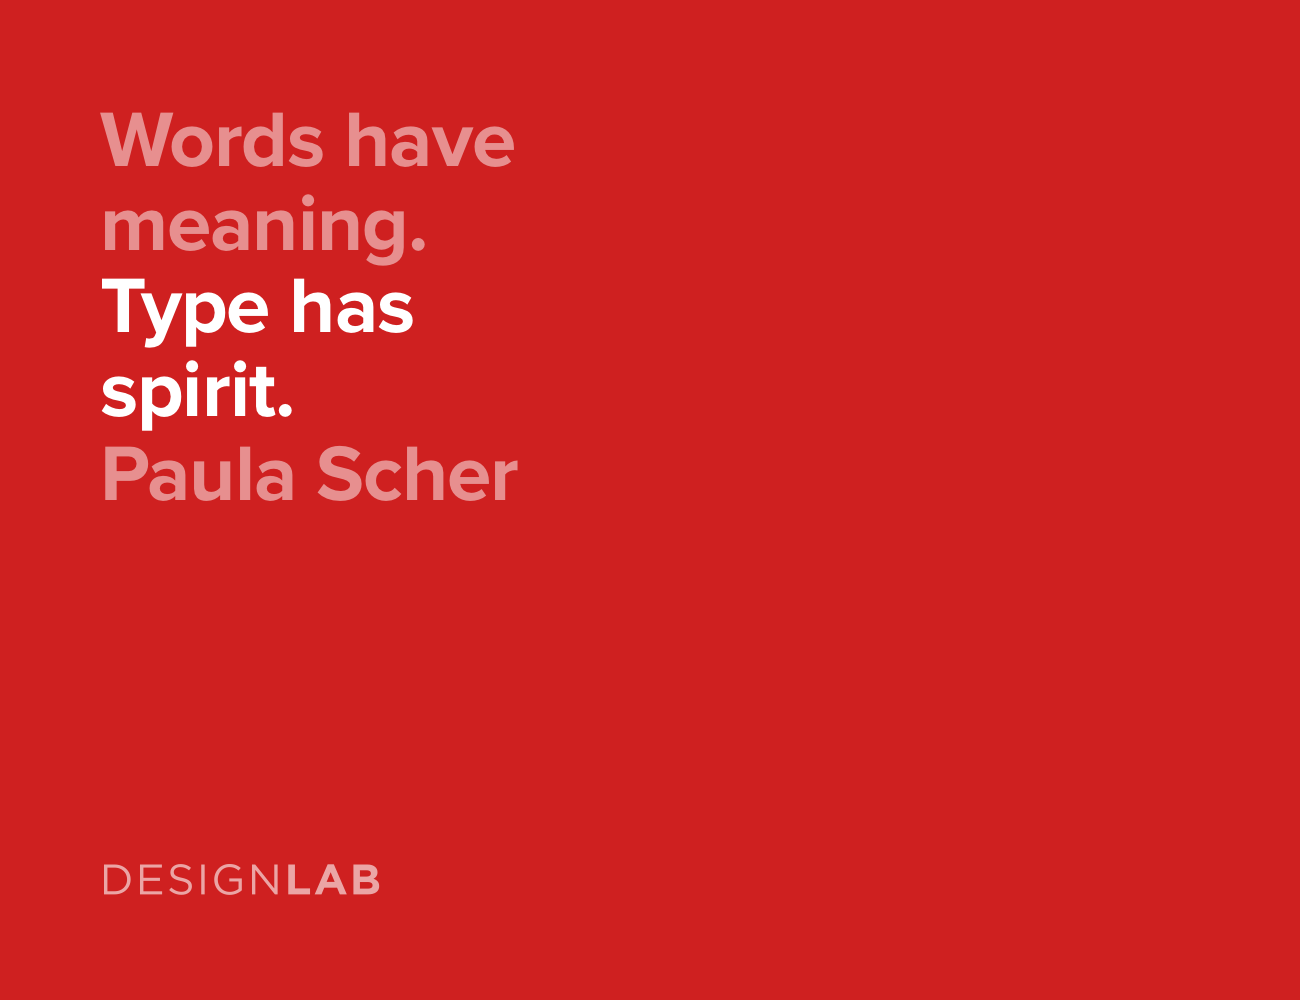 Words have meaning. Type has spirit. Paula Scher